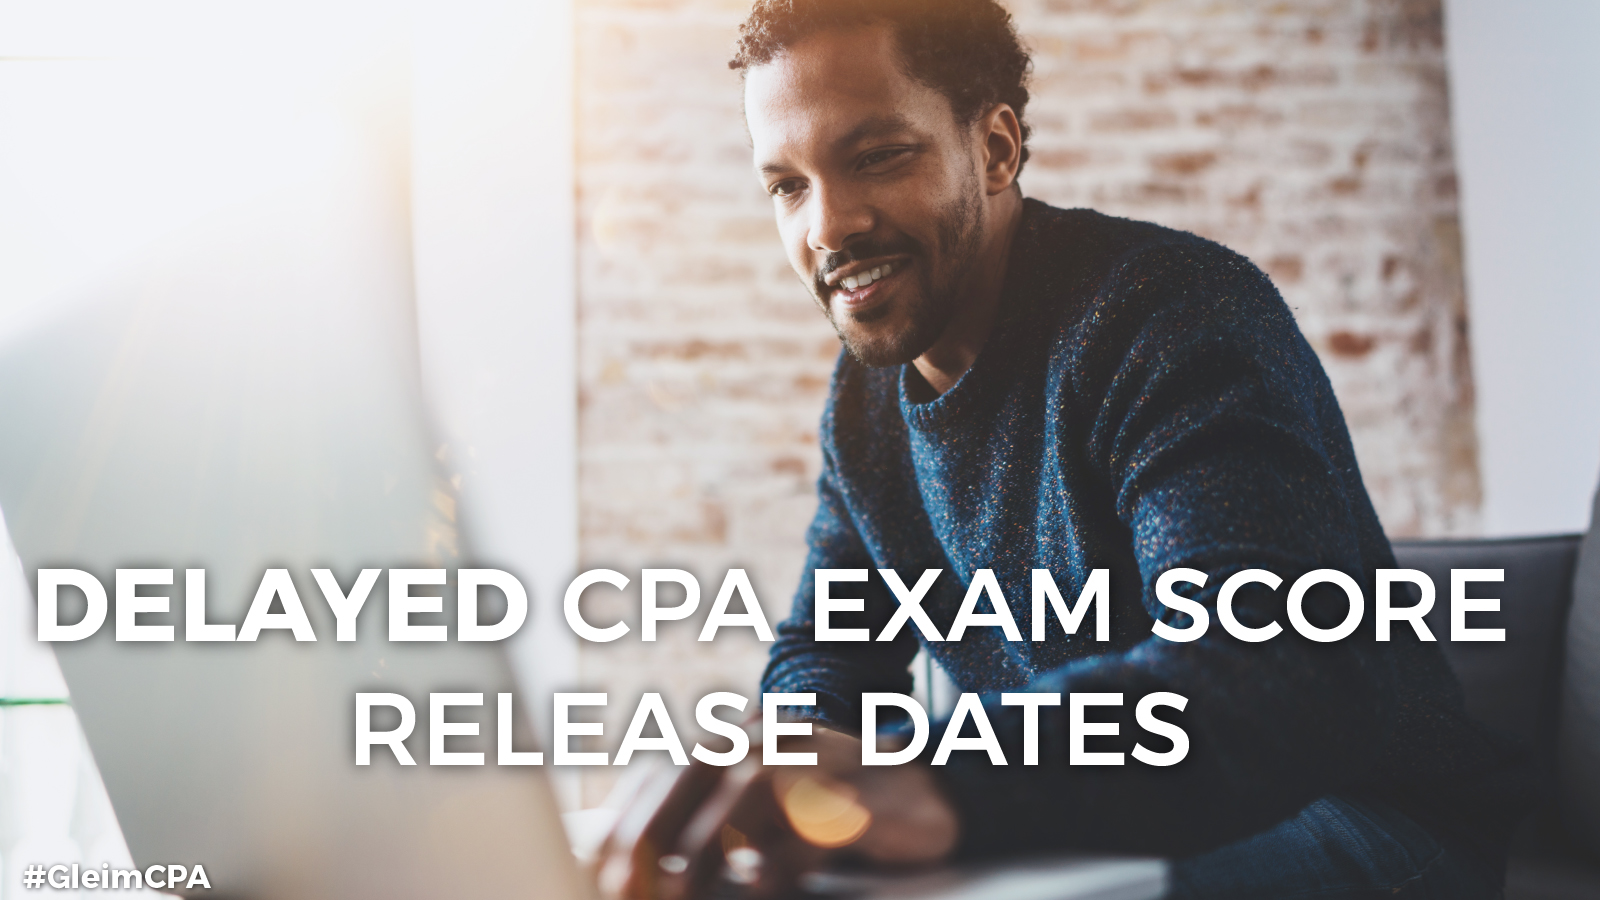 Delayed CPA score release dates